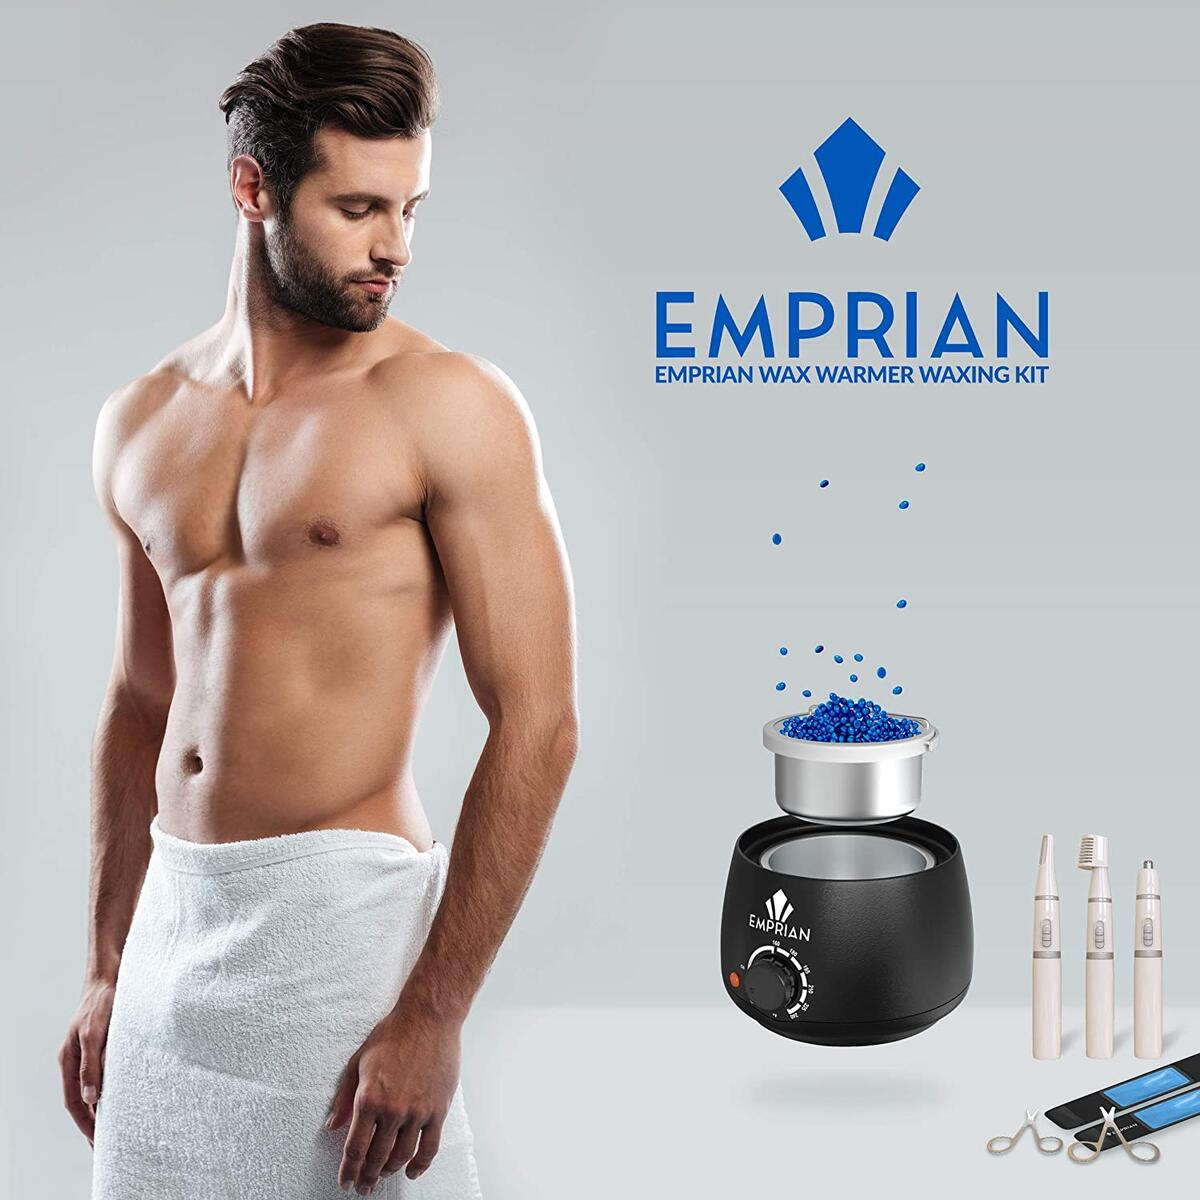 Emprian Waxing kit Wax Warmer - 200gr Blue Wax BEADS - Hair Removal Wax Pot for Women and Men - Painless Waxing for Full Body, Legs, Face, Eyebrows, Bikini and Armpit - Easy to Use Brazilian Waxing kit for Home and Salon